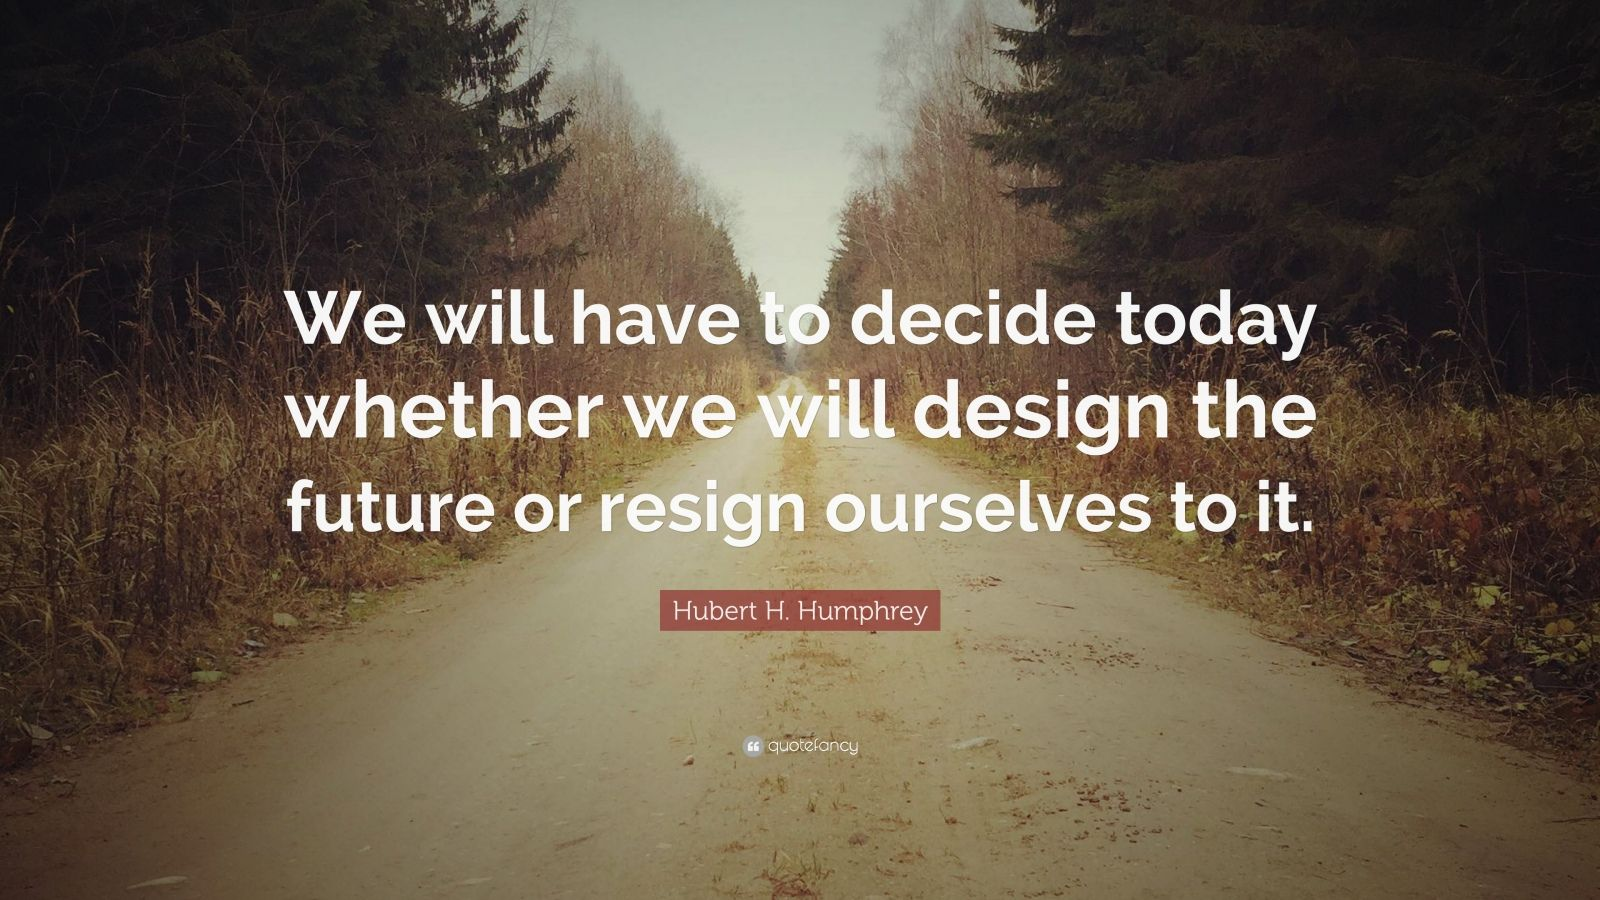 """Hubert H. Humphrey Quote: """"We will have to decide today whether we will design the future or resign ourselves to it."""""""